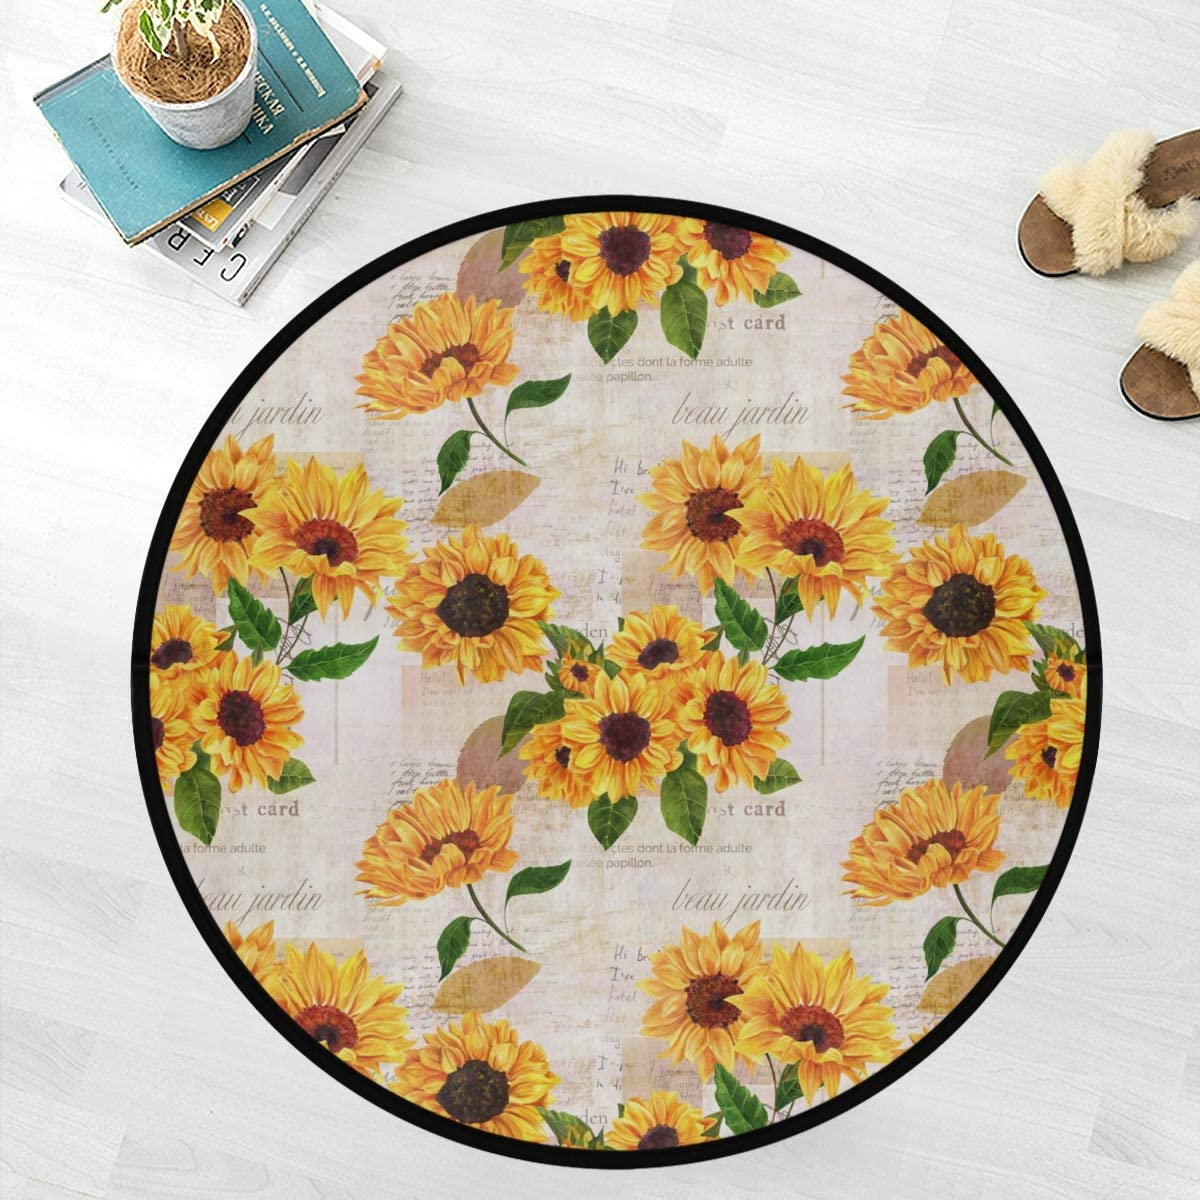 Naanle Floral Flower Anti Fatigue Round Area Rug, Watercolor Sunflower Non Slip Absorbent Comfort Round Rug Floor Carpet Yoga Mat for Entryway Living Room Bedroom Sofa Home Decor (3' in Diameter)